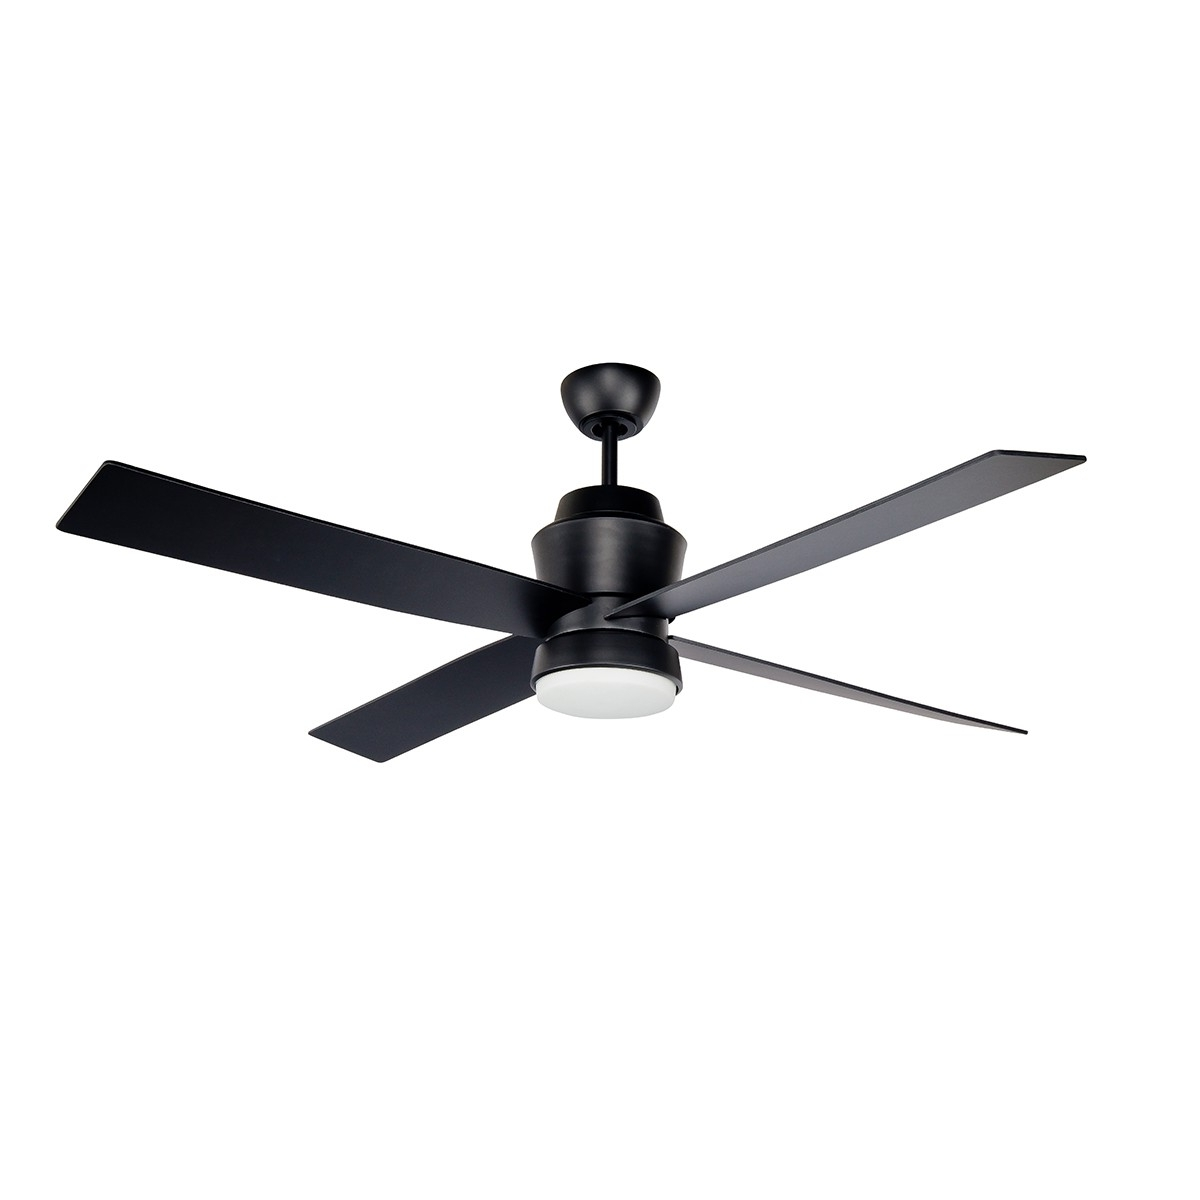 Modern Outdoor Ceiling Fans Throughout Widely Used Prologue Outdoor Ceiling Fan :: Stori Modern (View 5 of 20)